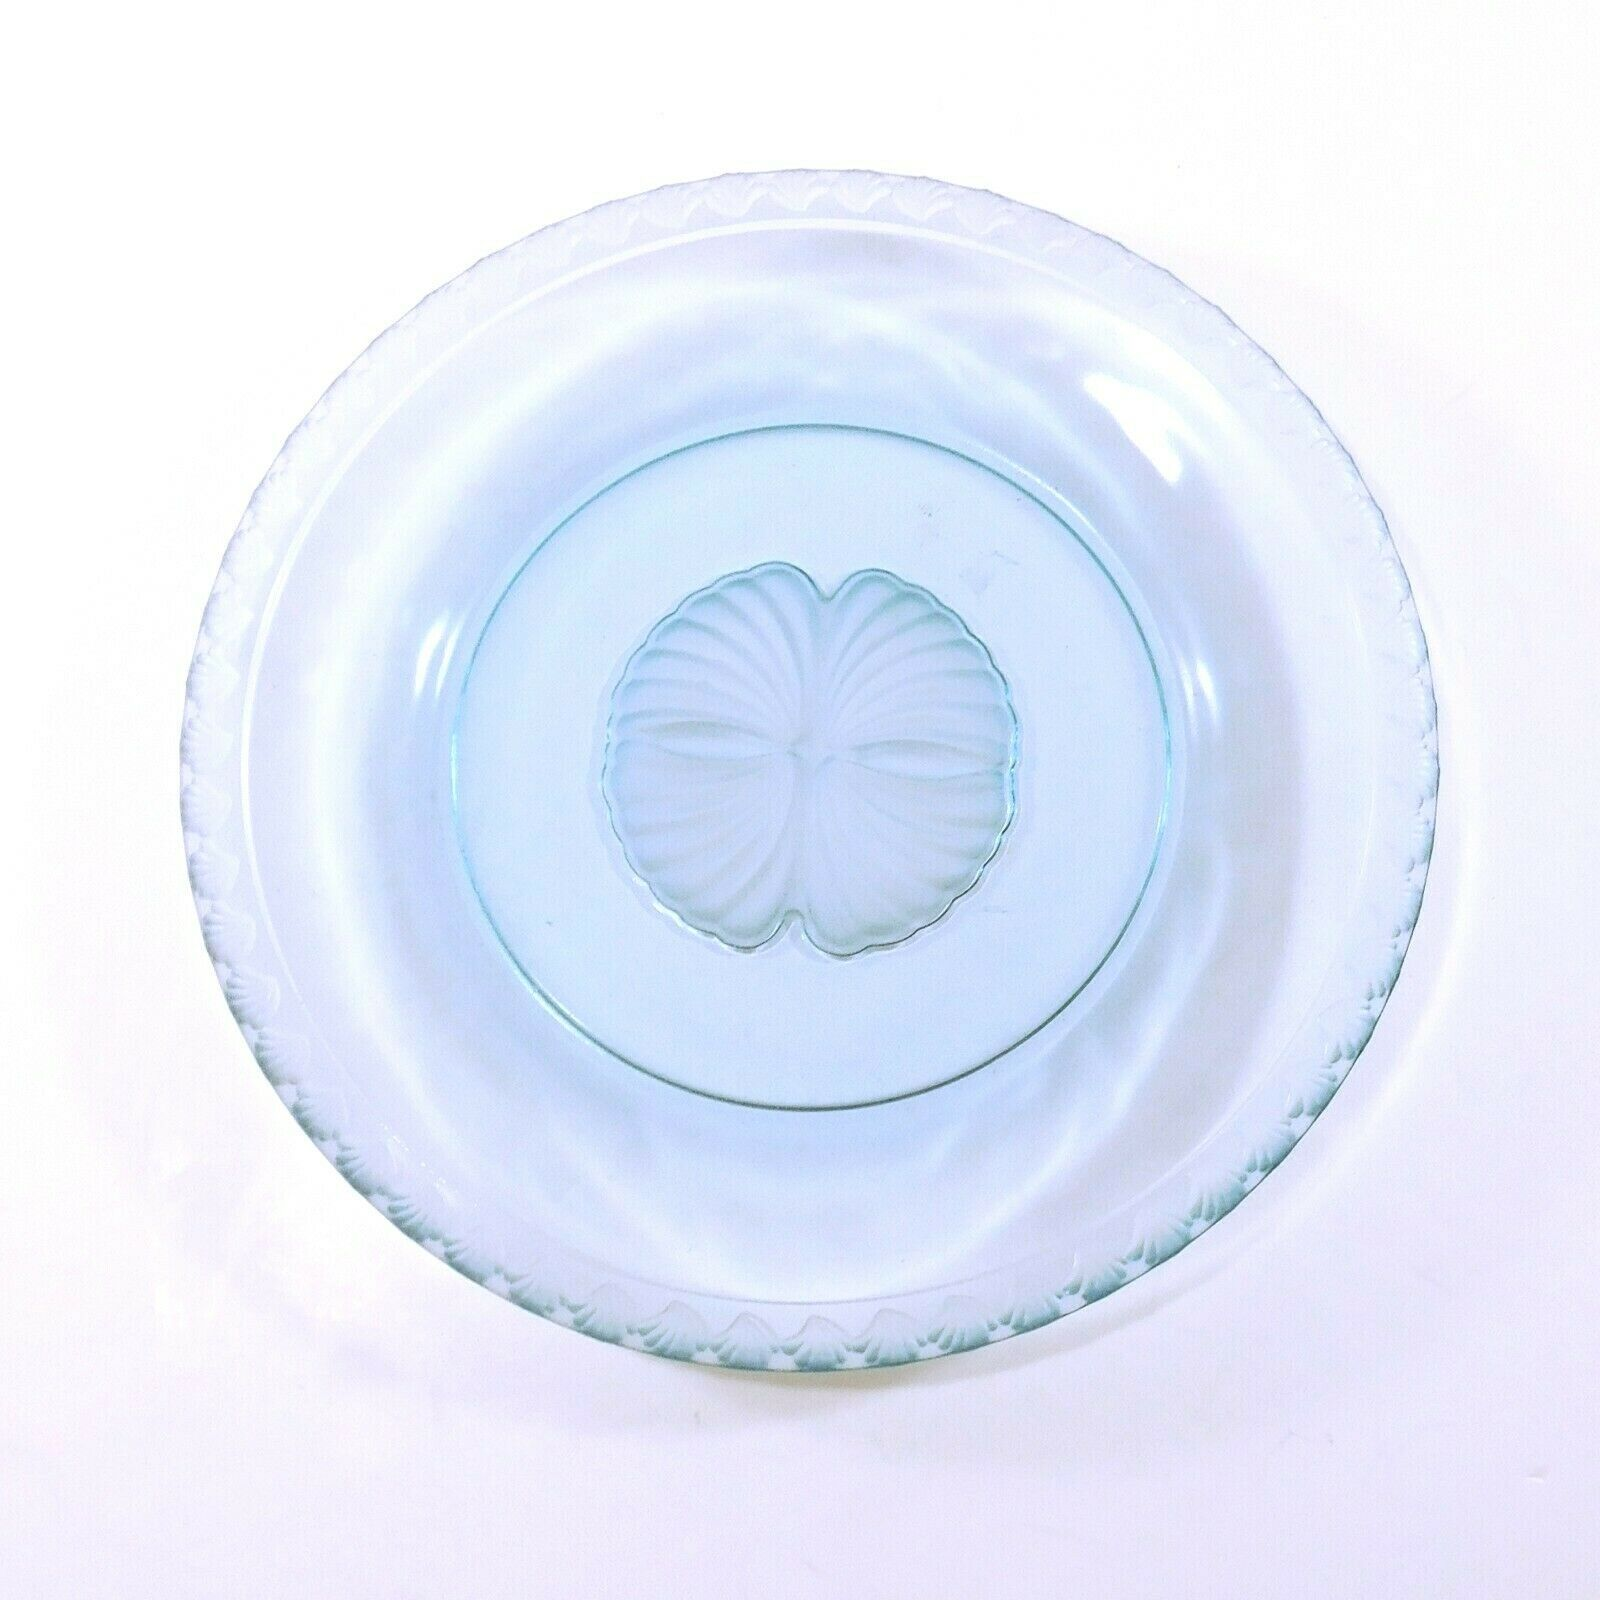 Primary image for Fostoria CAPTIVA SHELL Luncheon / Salad Plate Blue Glass 8""